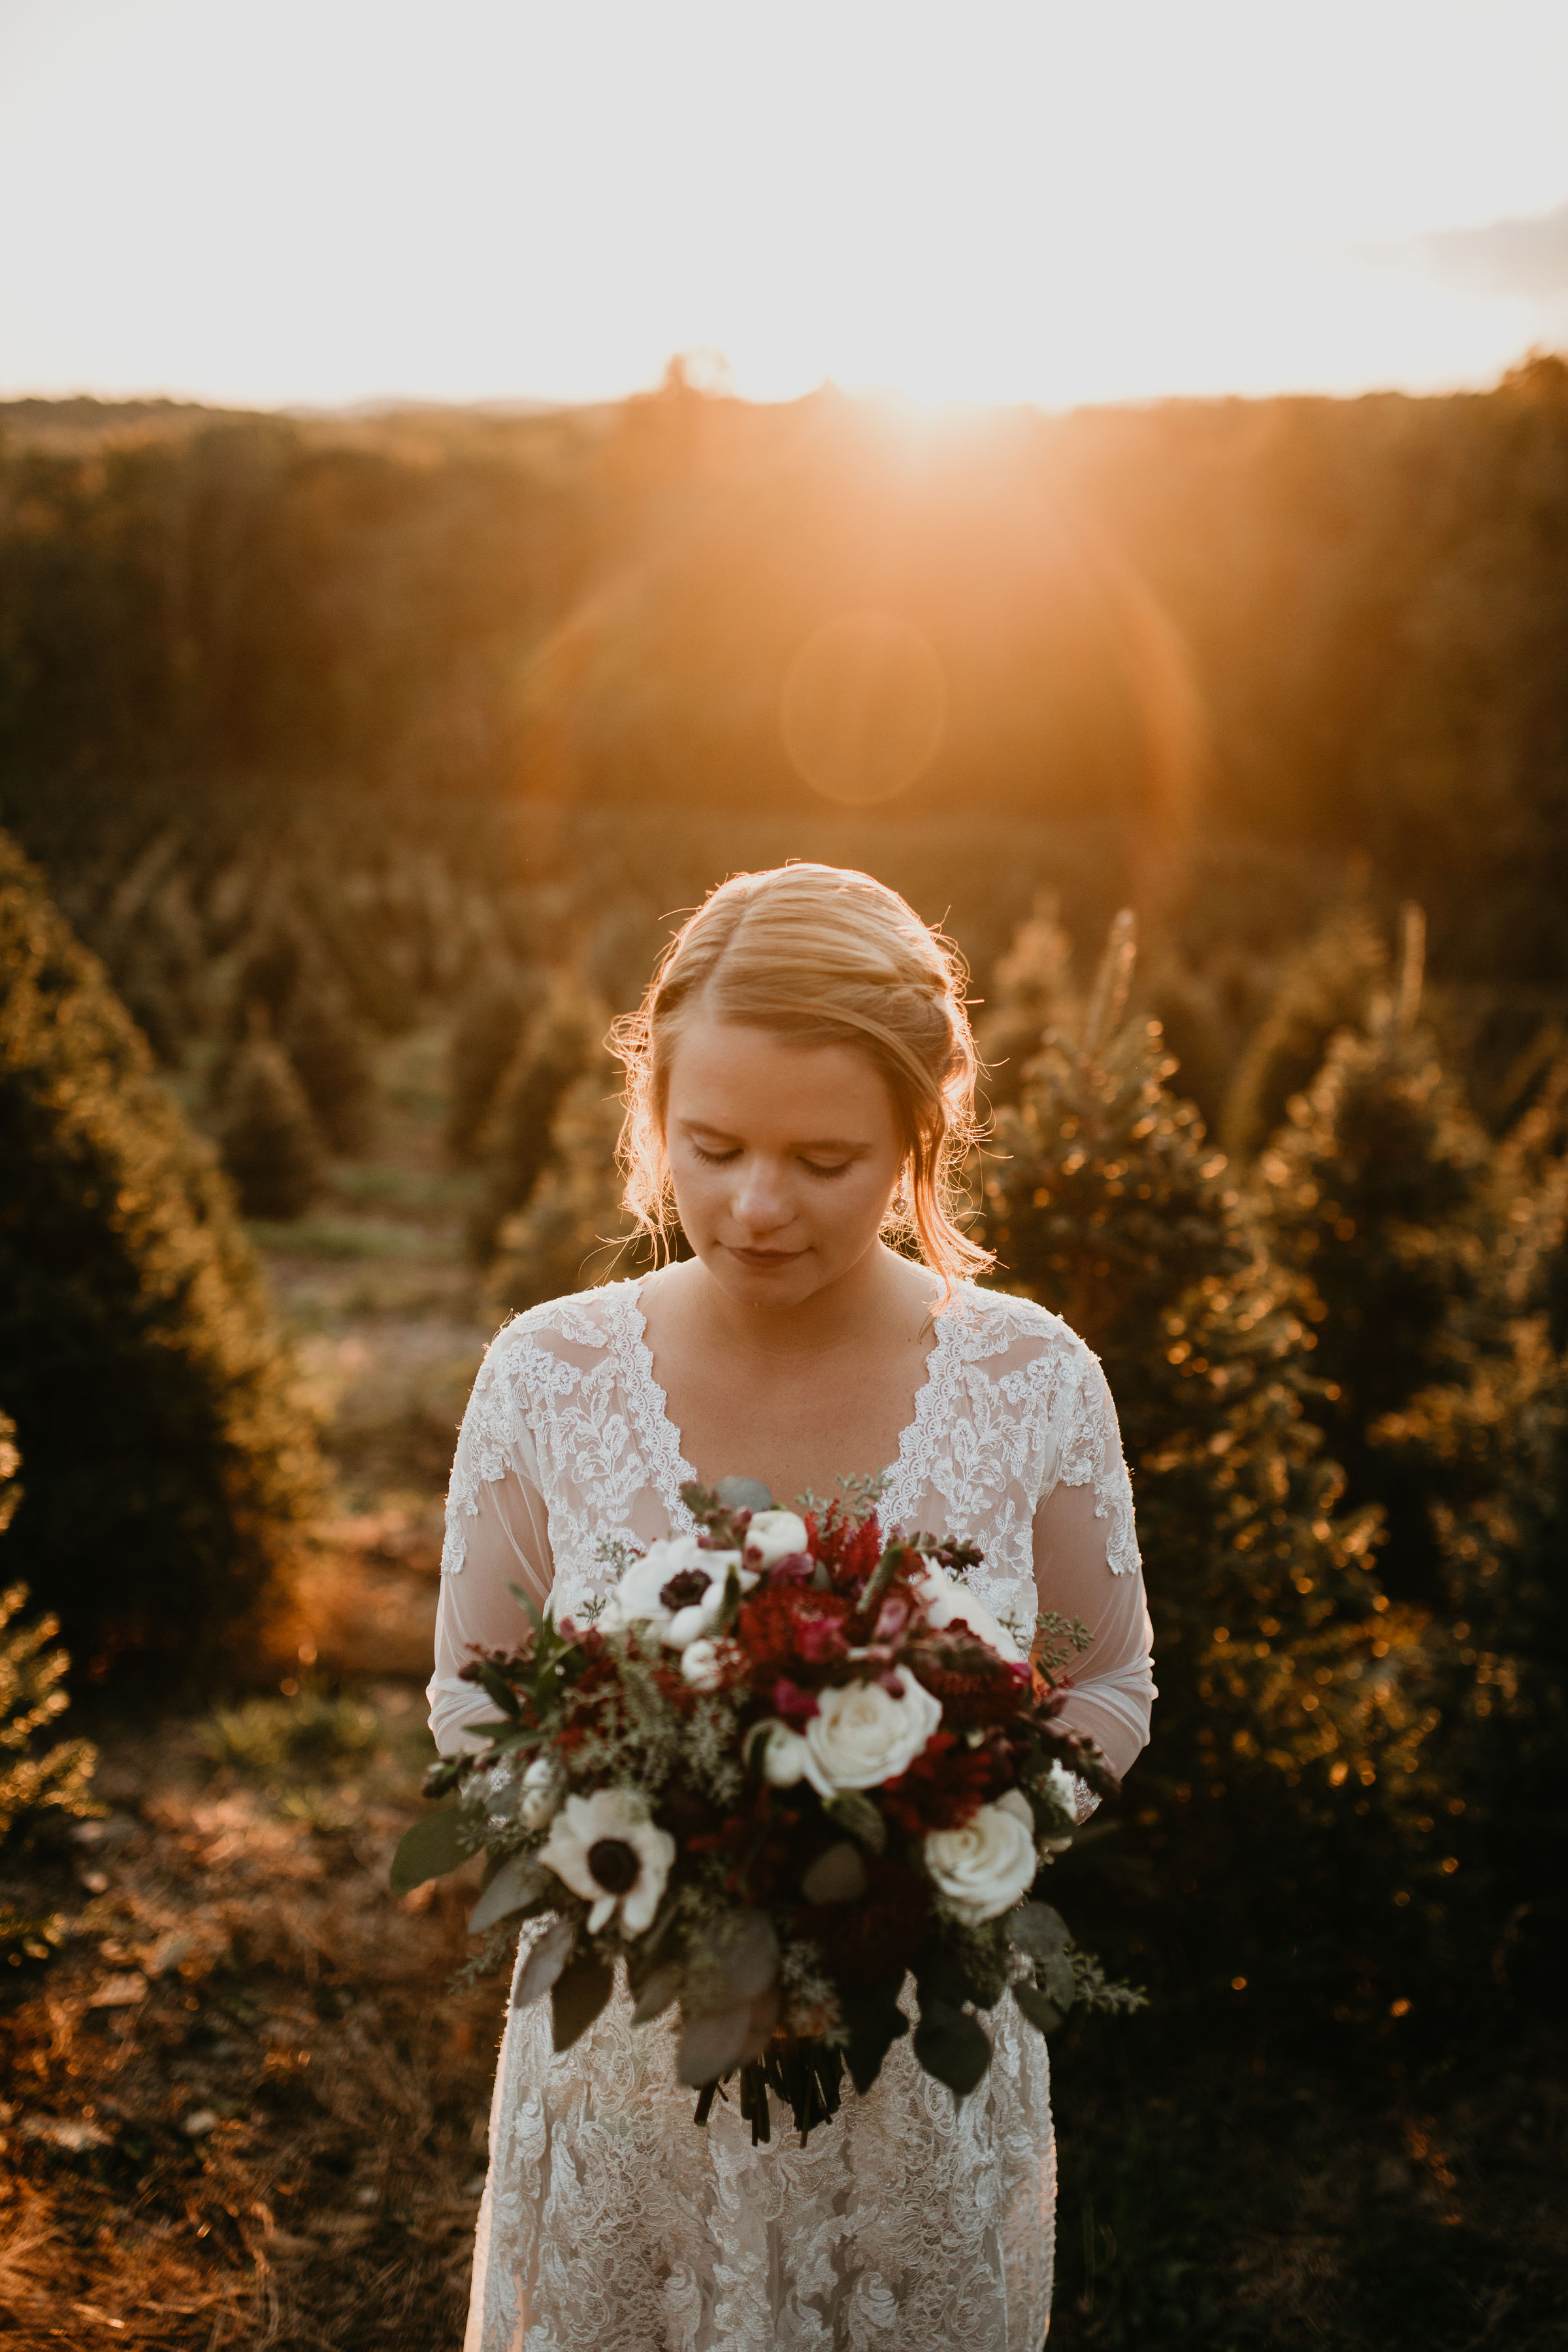 young-love-media-rustic-fall-autumn-wedding-emmerich-tree-farm-hudson-valley-warwick-new-york-first-look-349.jpg